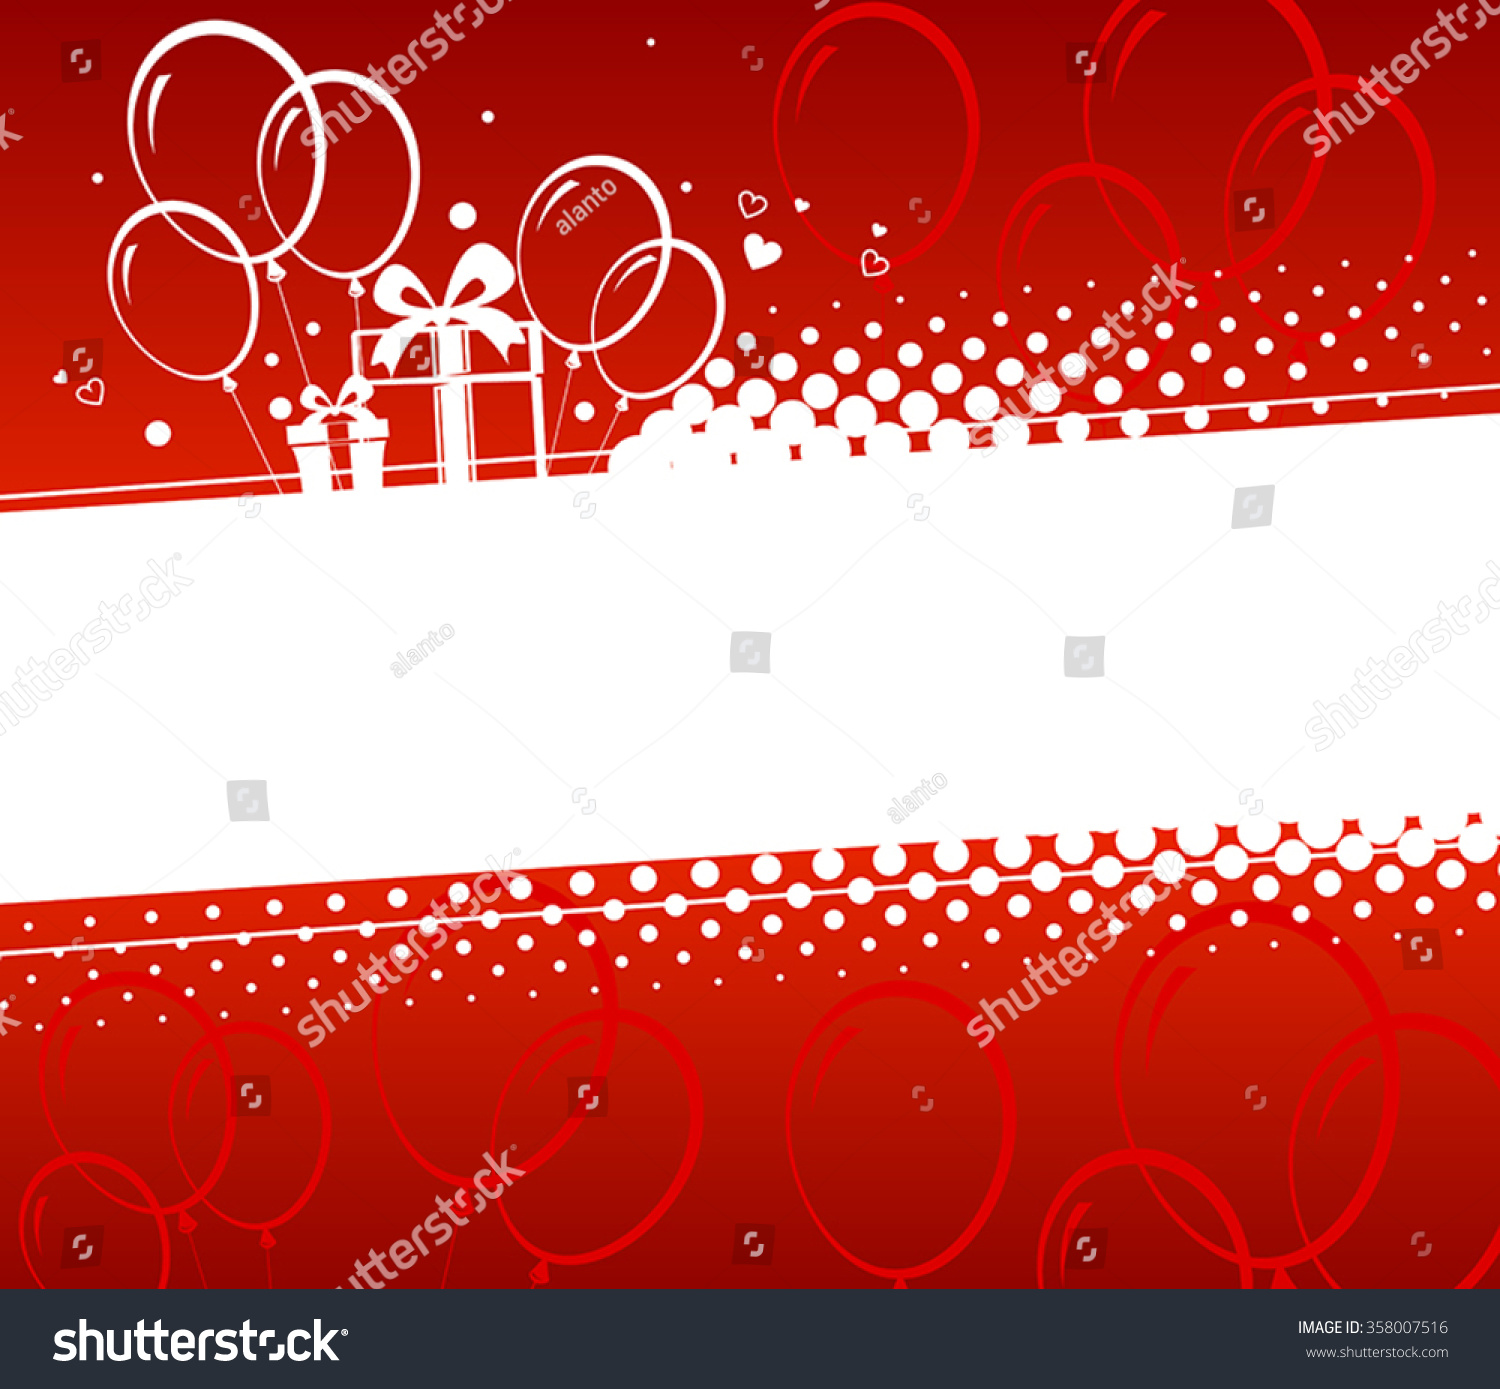 Birthday Background Silhouettes Gifts Balloons Stock